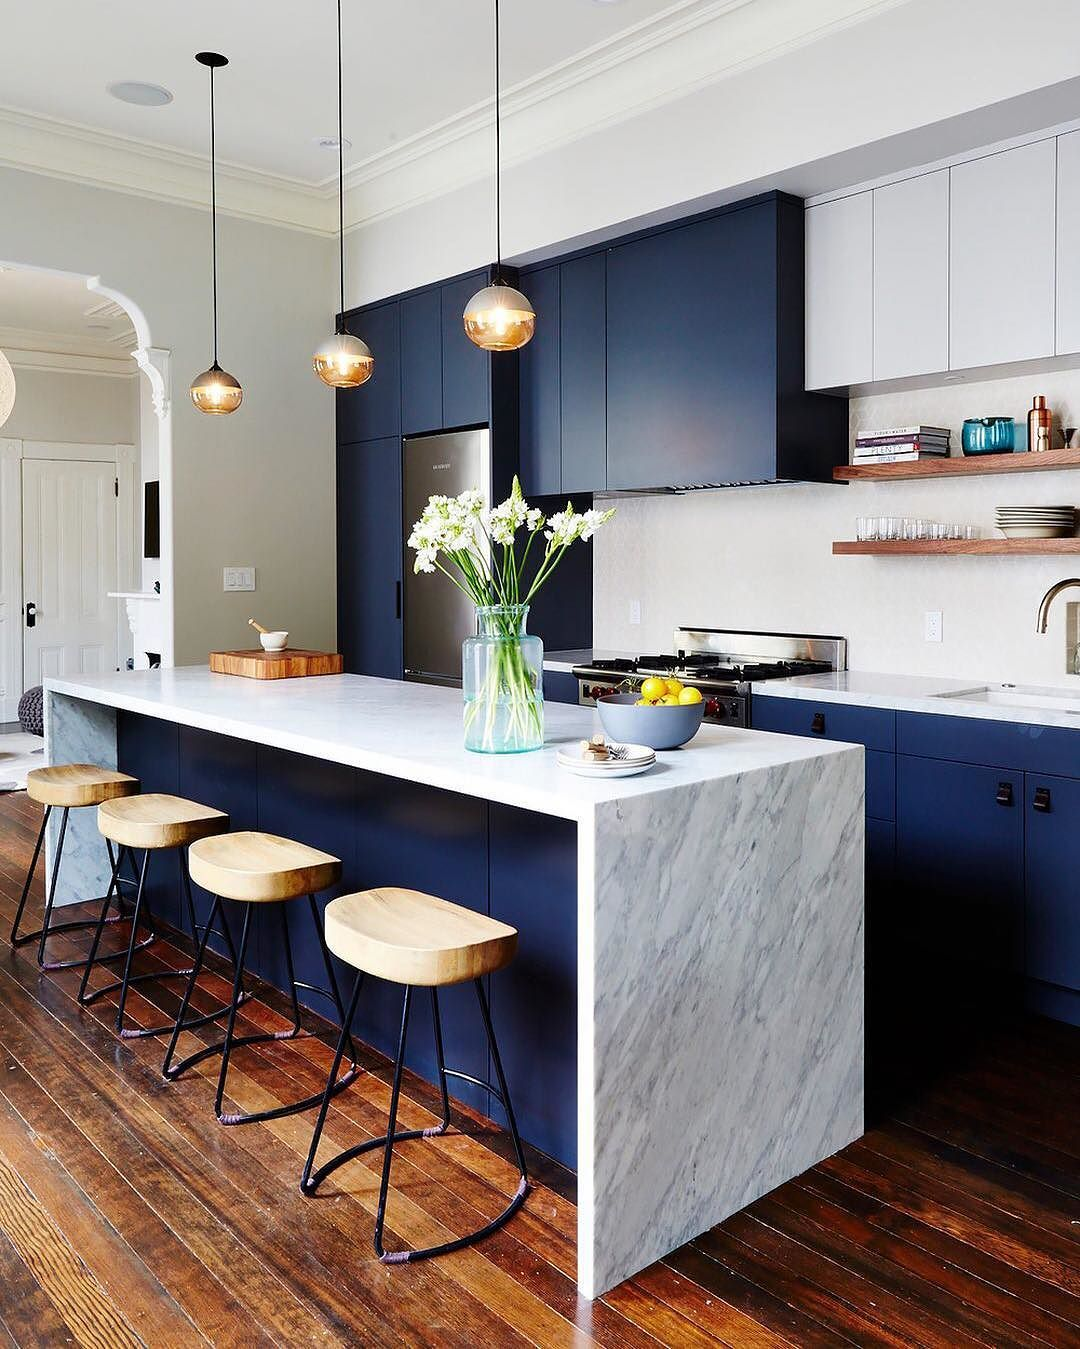 Coastal Kitchen Design Trends For 2018: Navy, White, Marble